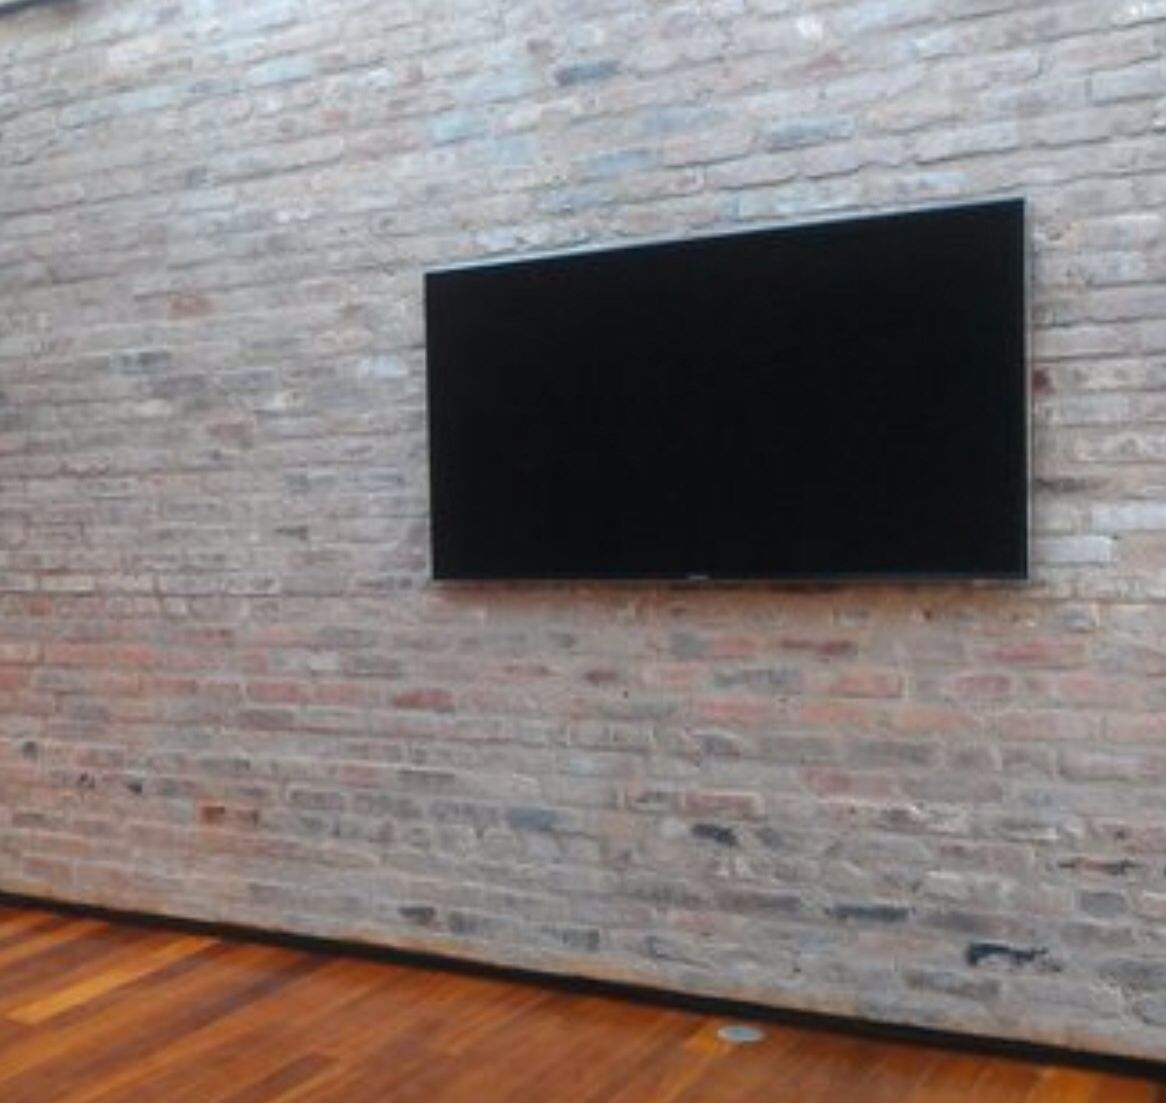 Tv mounted on brick wall with no visible cables bonus - Slanted wall tv mount ...